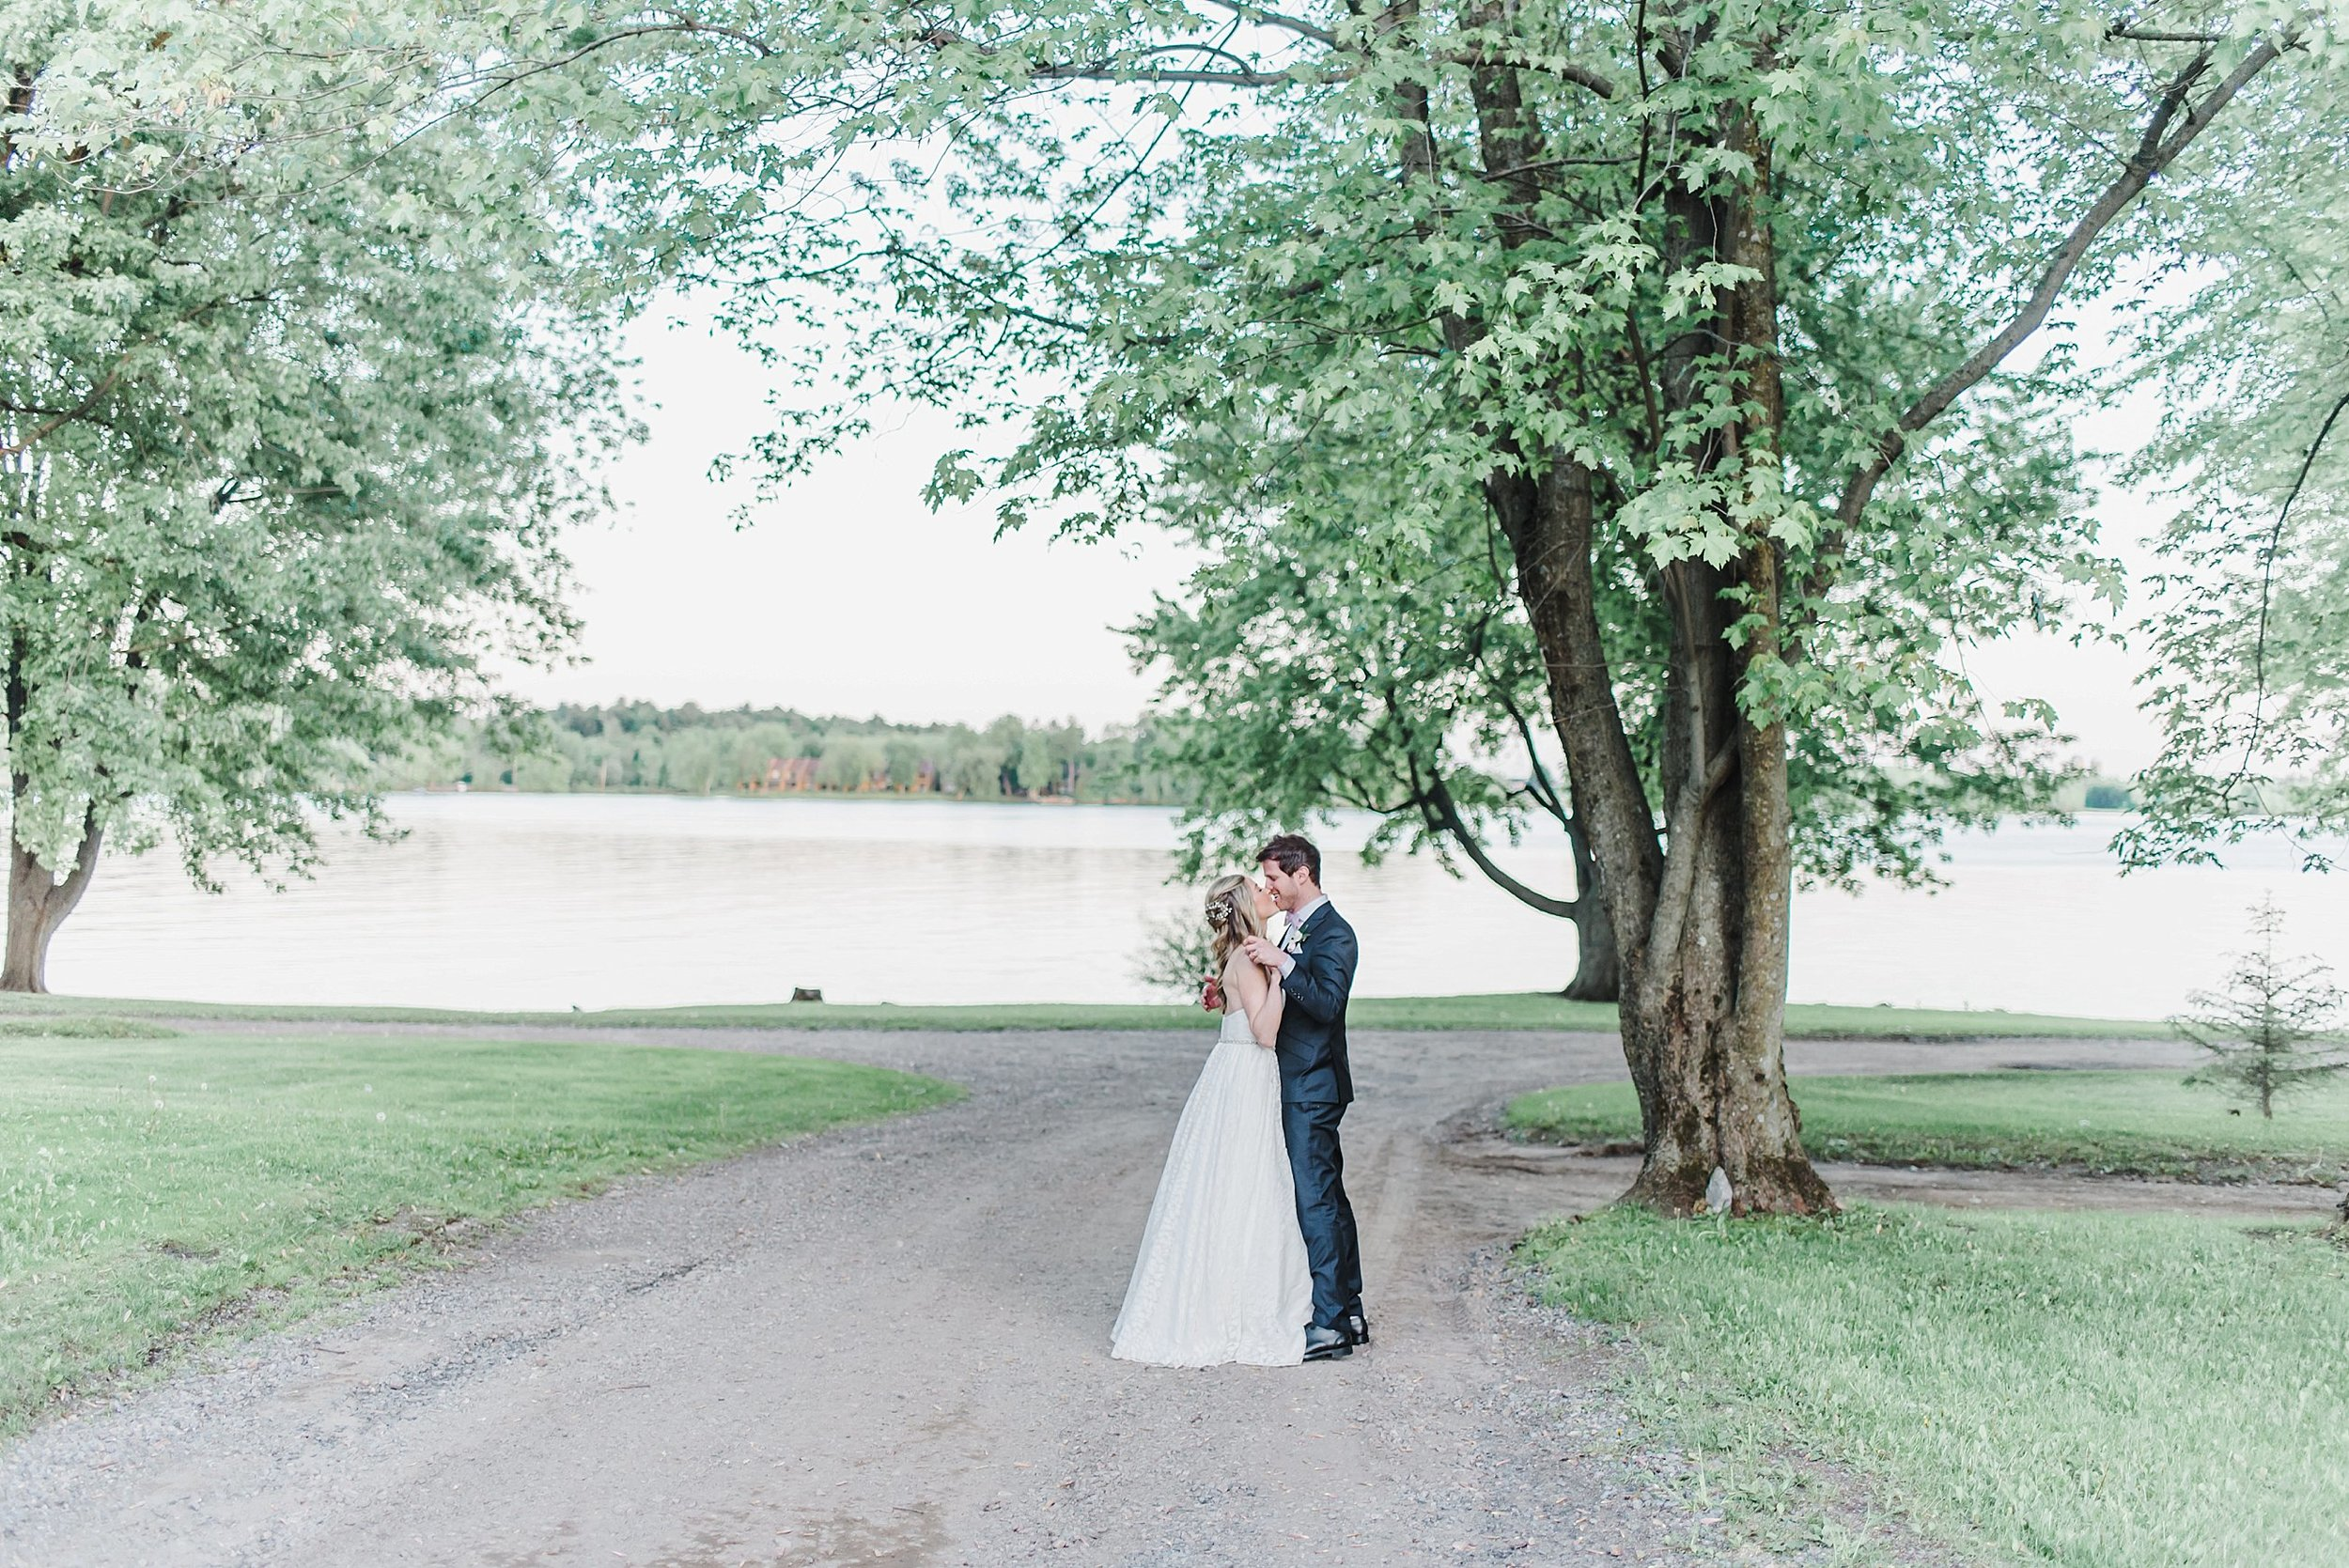 light airy indie fine art ottawa wedding photographer | Ali and Batoul Photography_0125.jpg